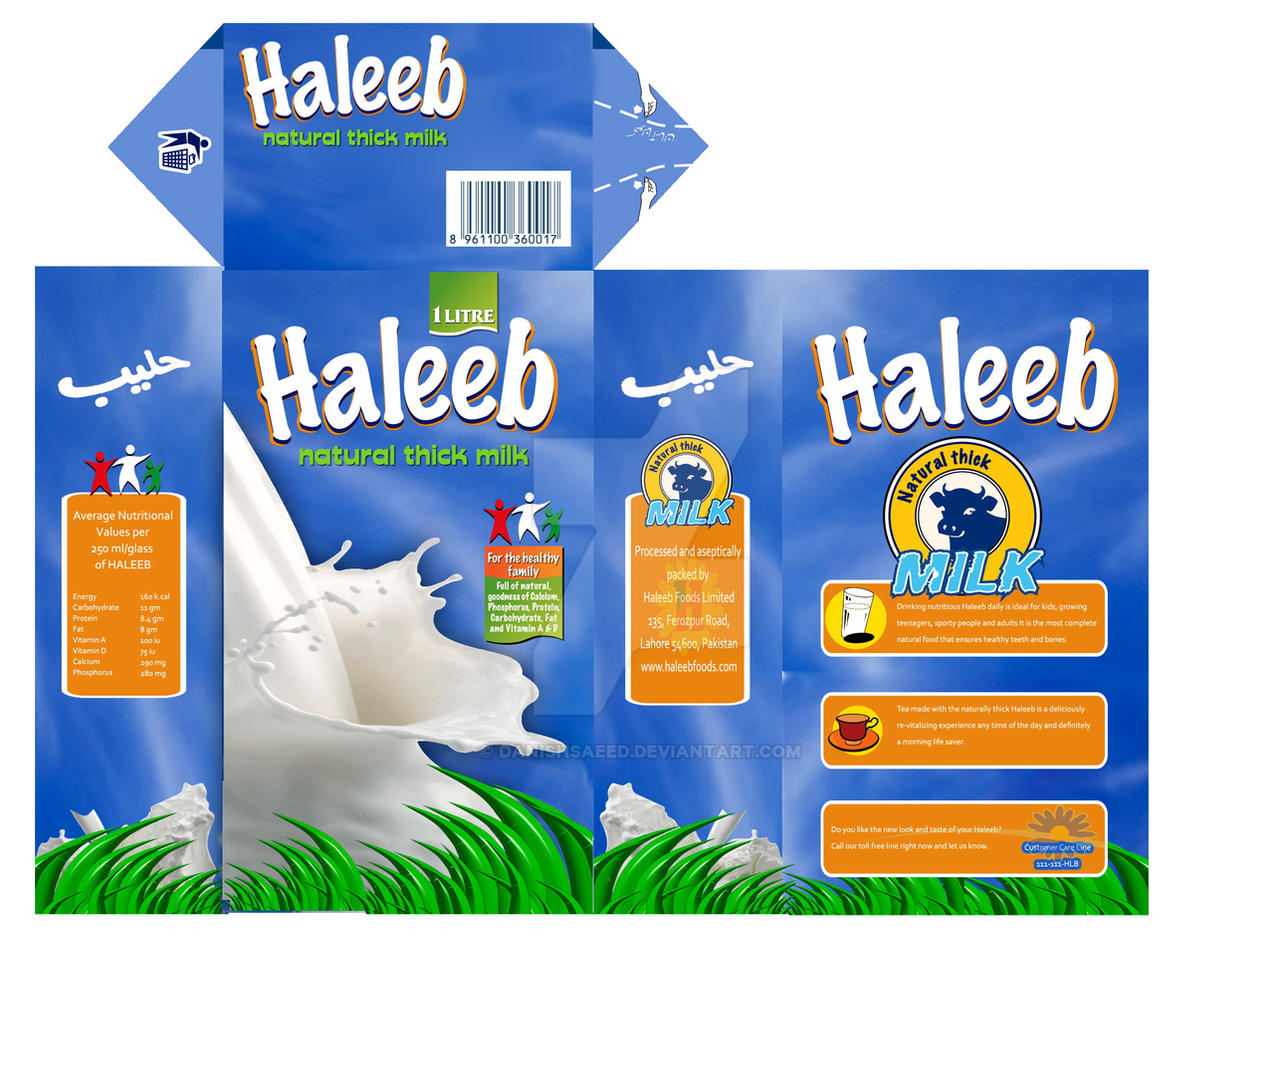 Haleeb Milk Packaging by danishsaeed